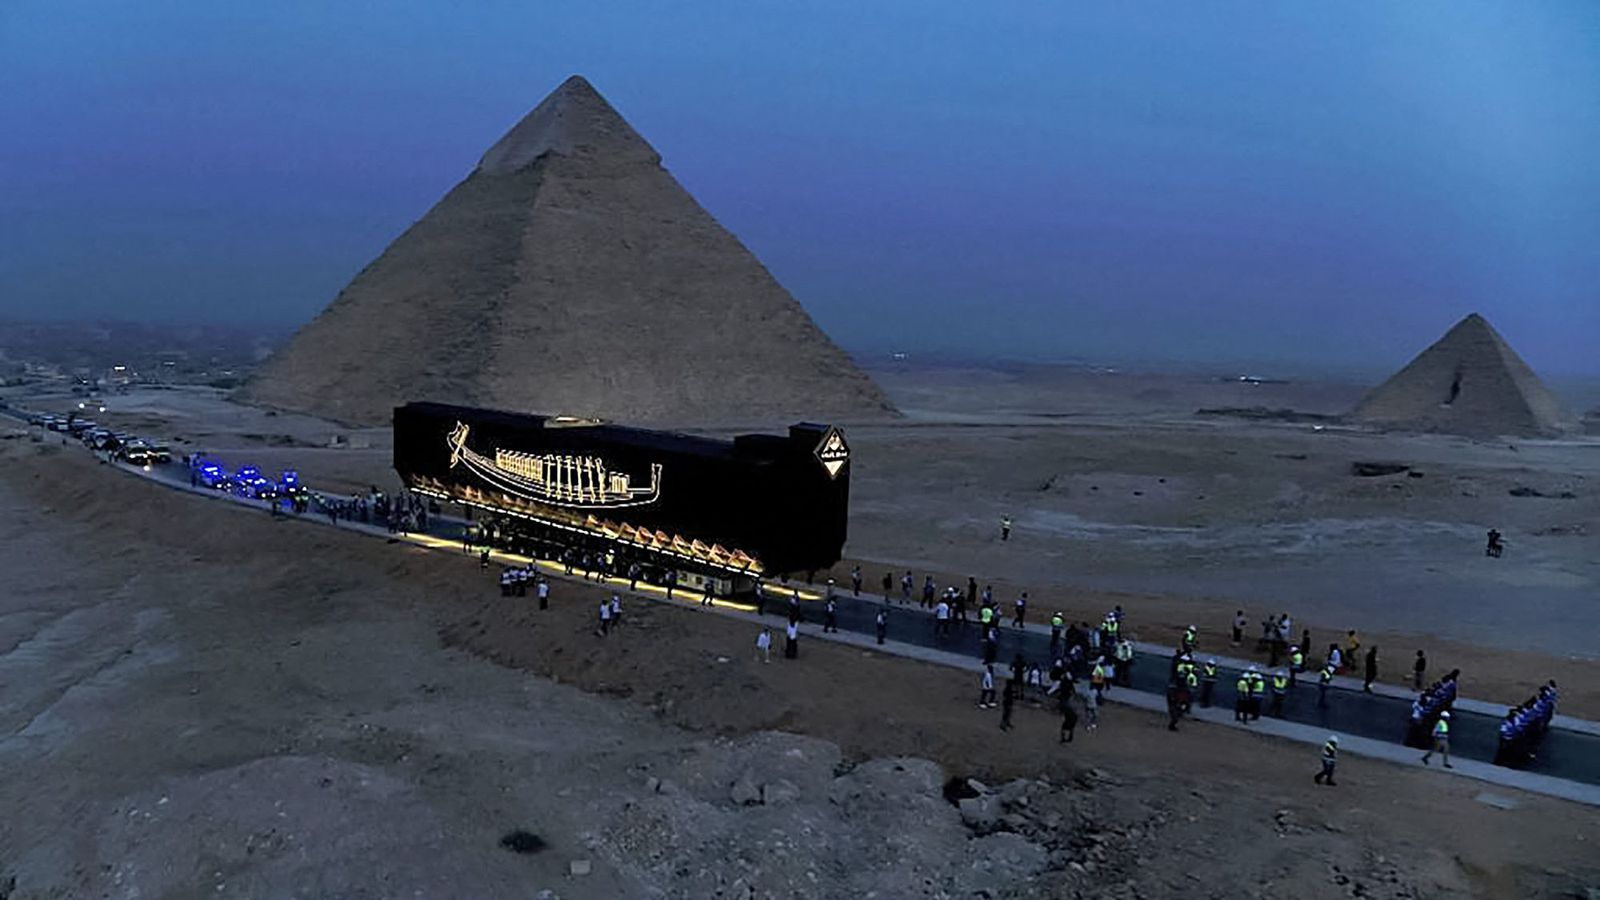 Last weekend, a 4,600-year-old ship once owned by the pharaoh Khufu traveled from its longtime home near the Pyramids of Giza to the Grand Egyptian Mu